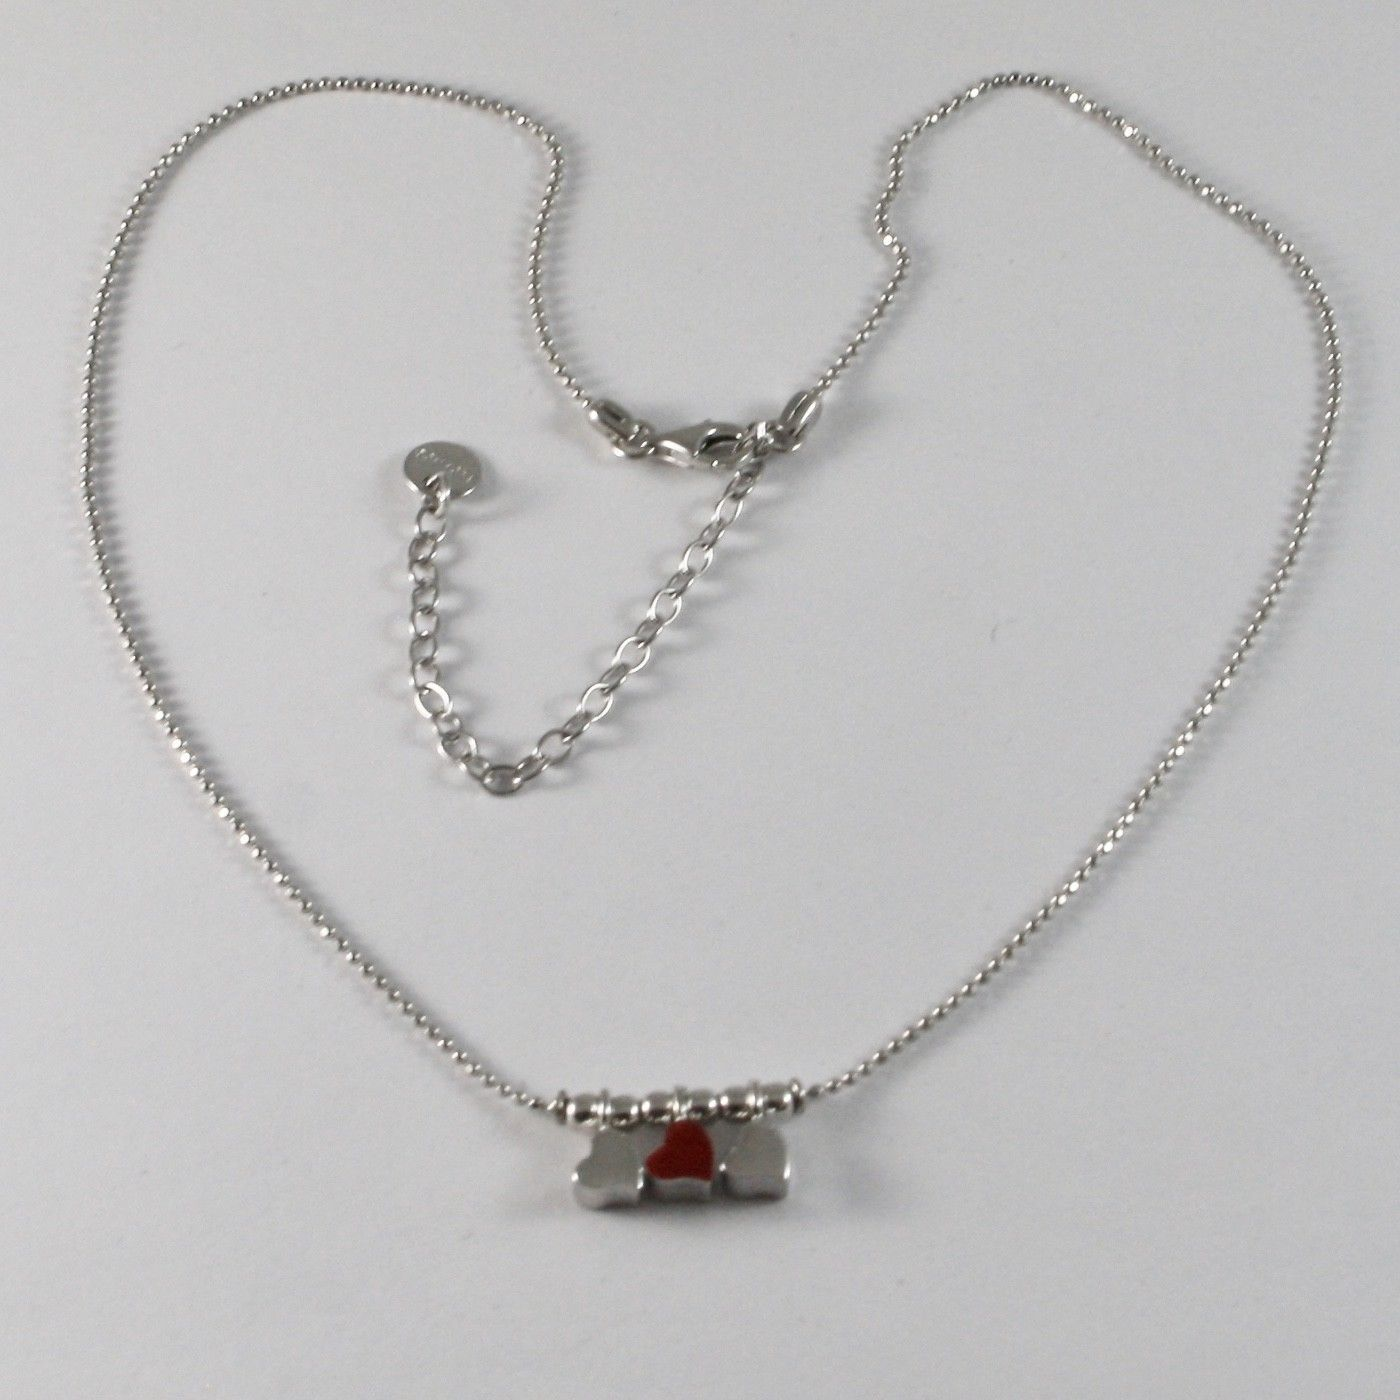 925 STERLING SILVER NECKLACE JACK&CO WITH HEARTS TRANSPARENCIES AND HEART